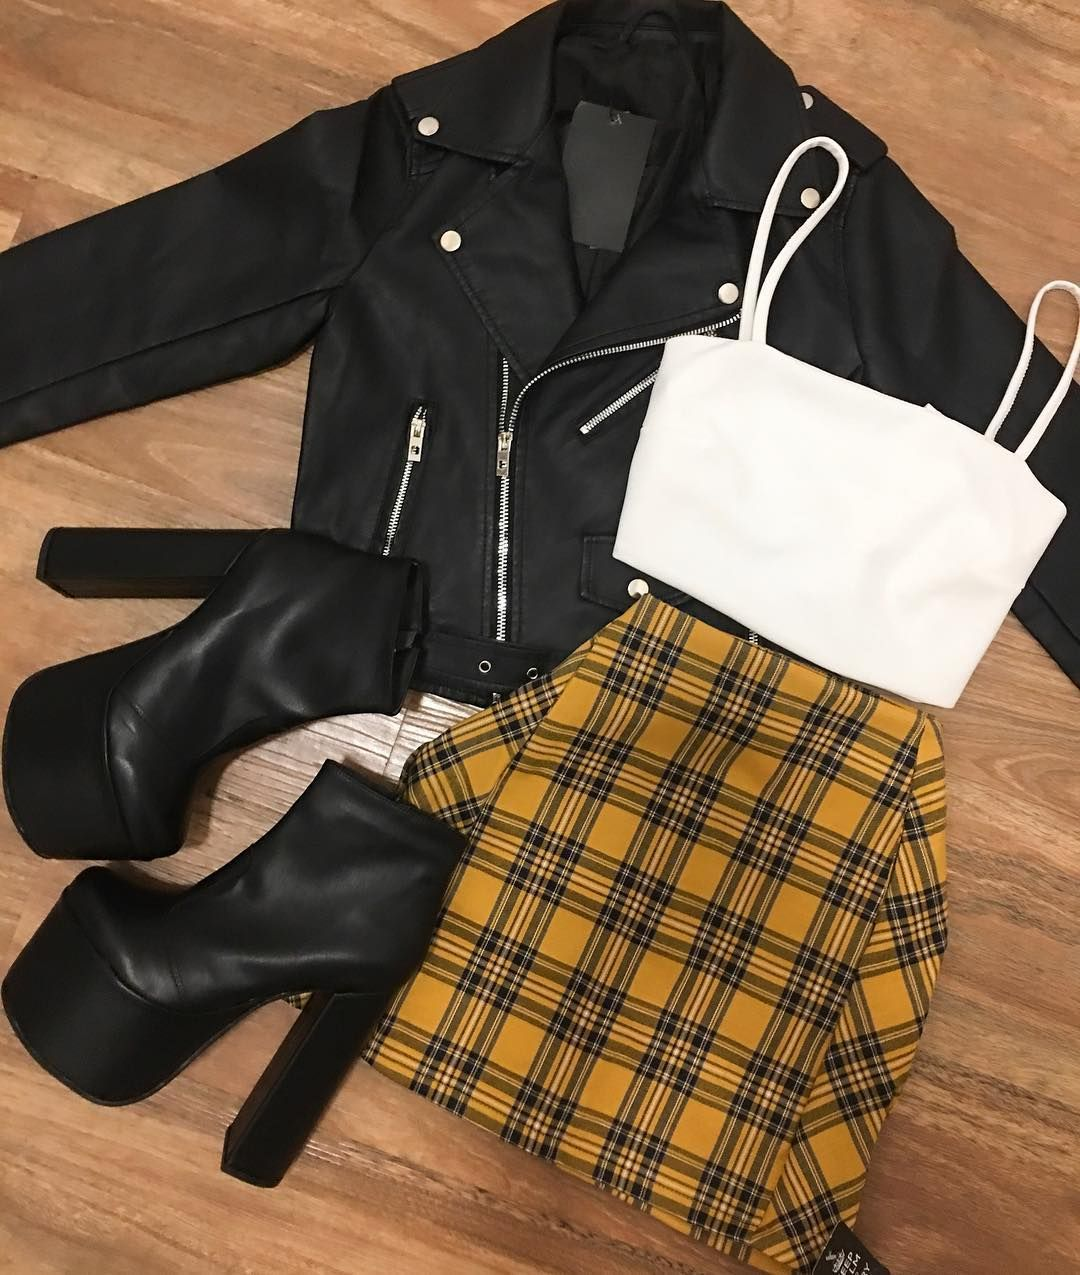 outfits short – Fashion